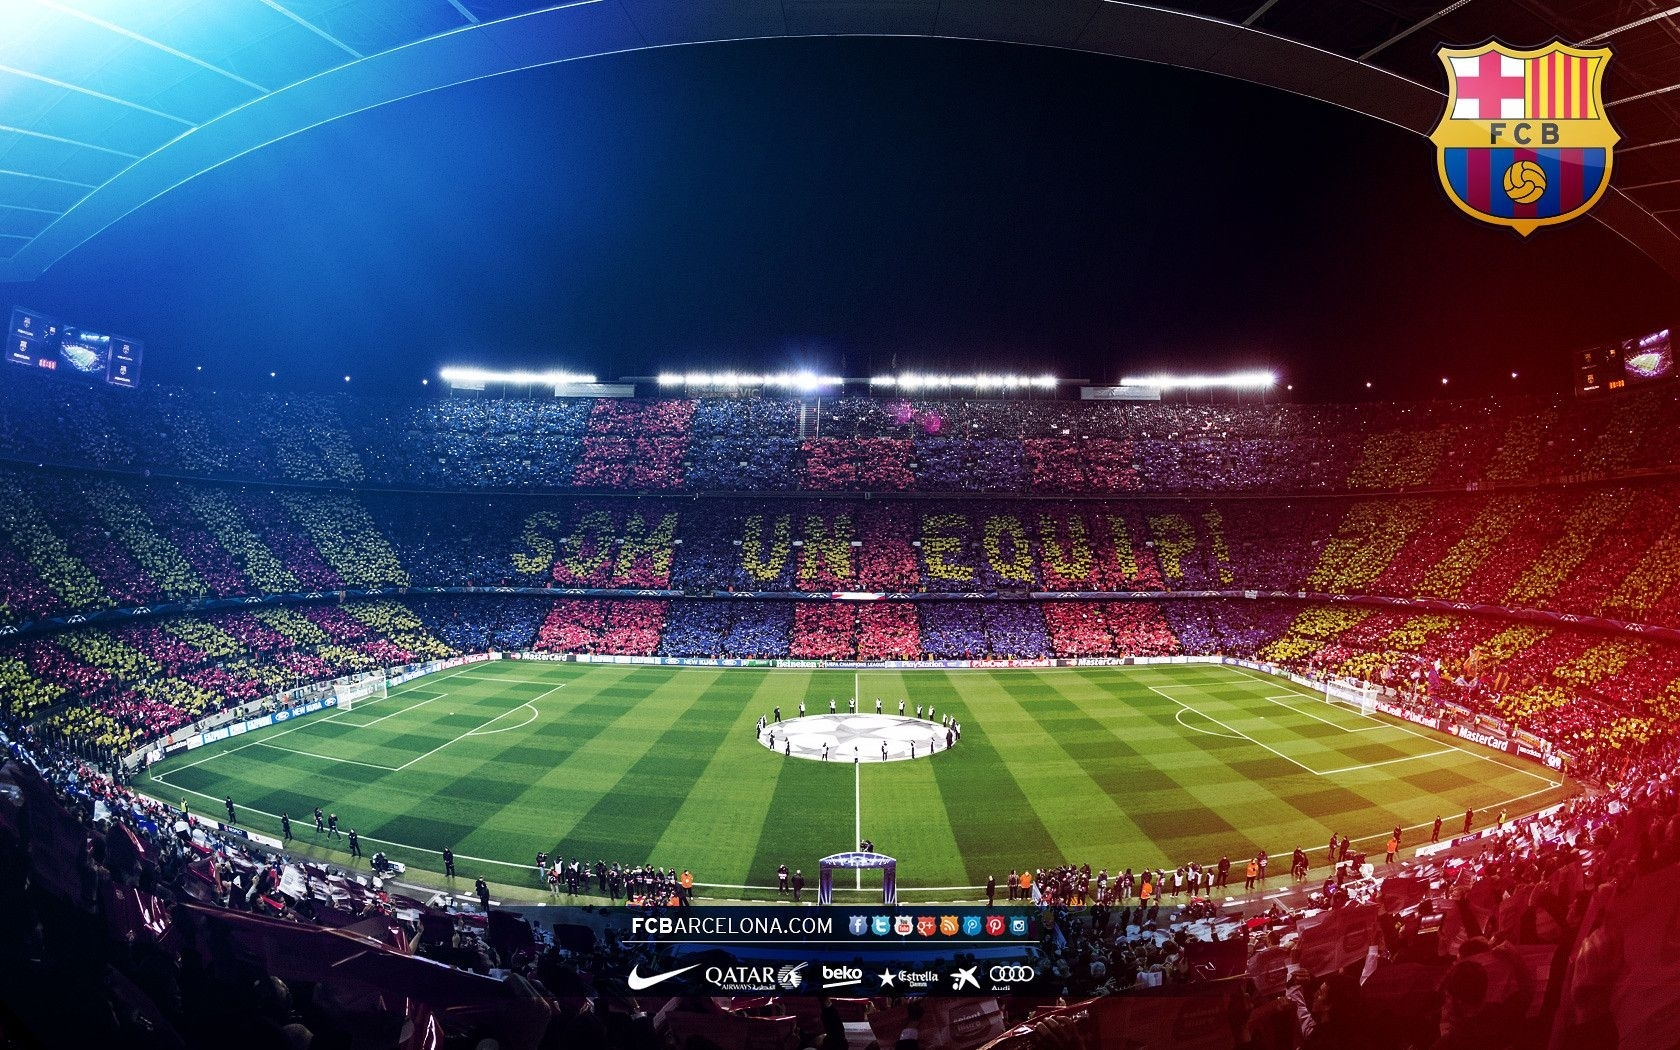 fcb camp nou | barça | pinterest | camp nou